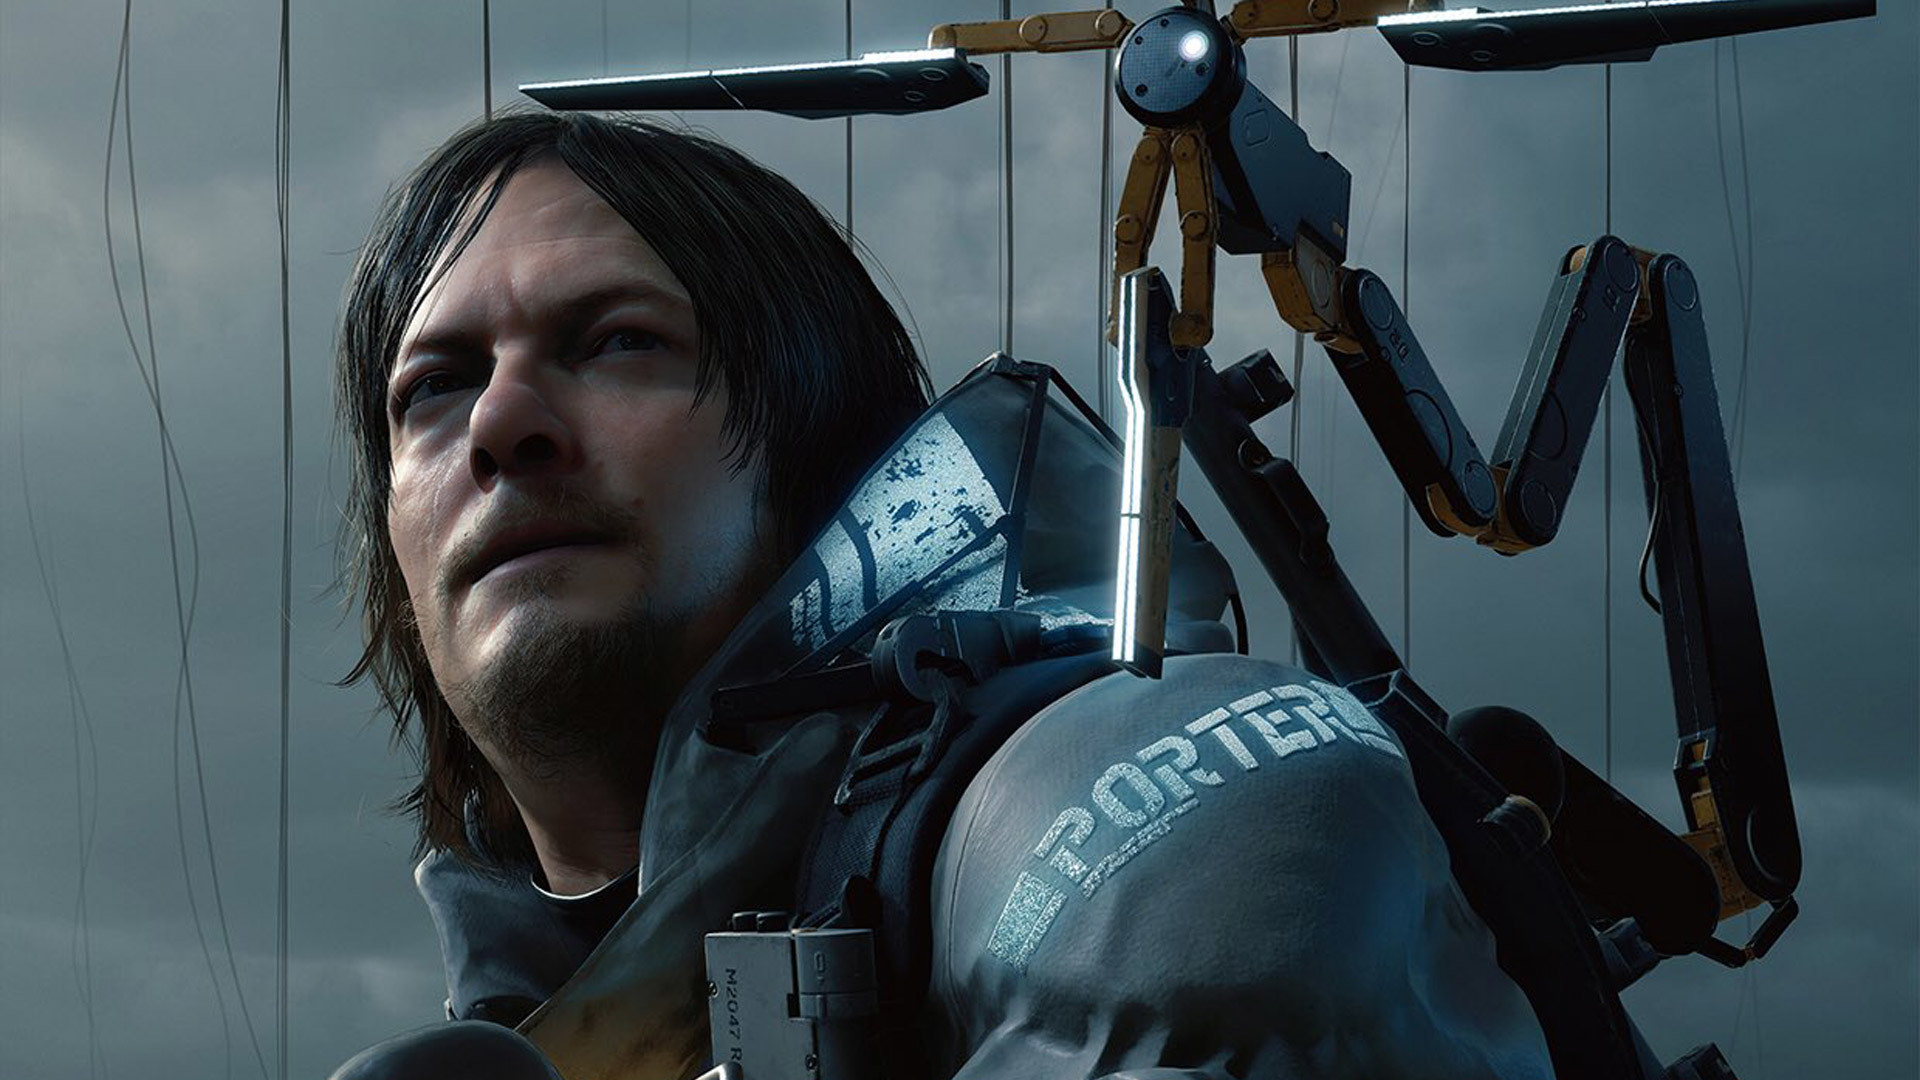 Brand New Characters And Gameplay Revealed For Death Stranding